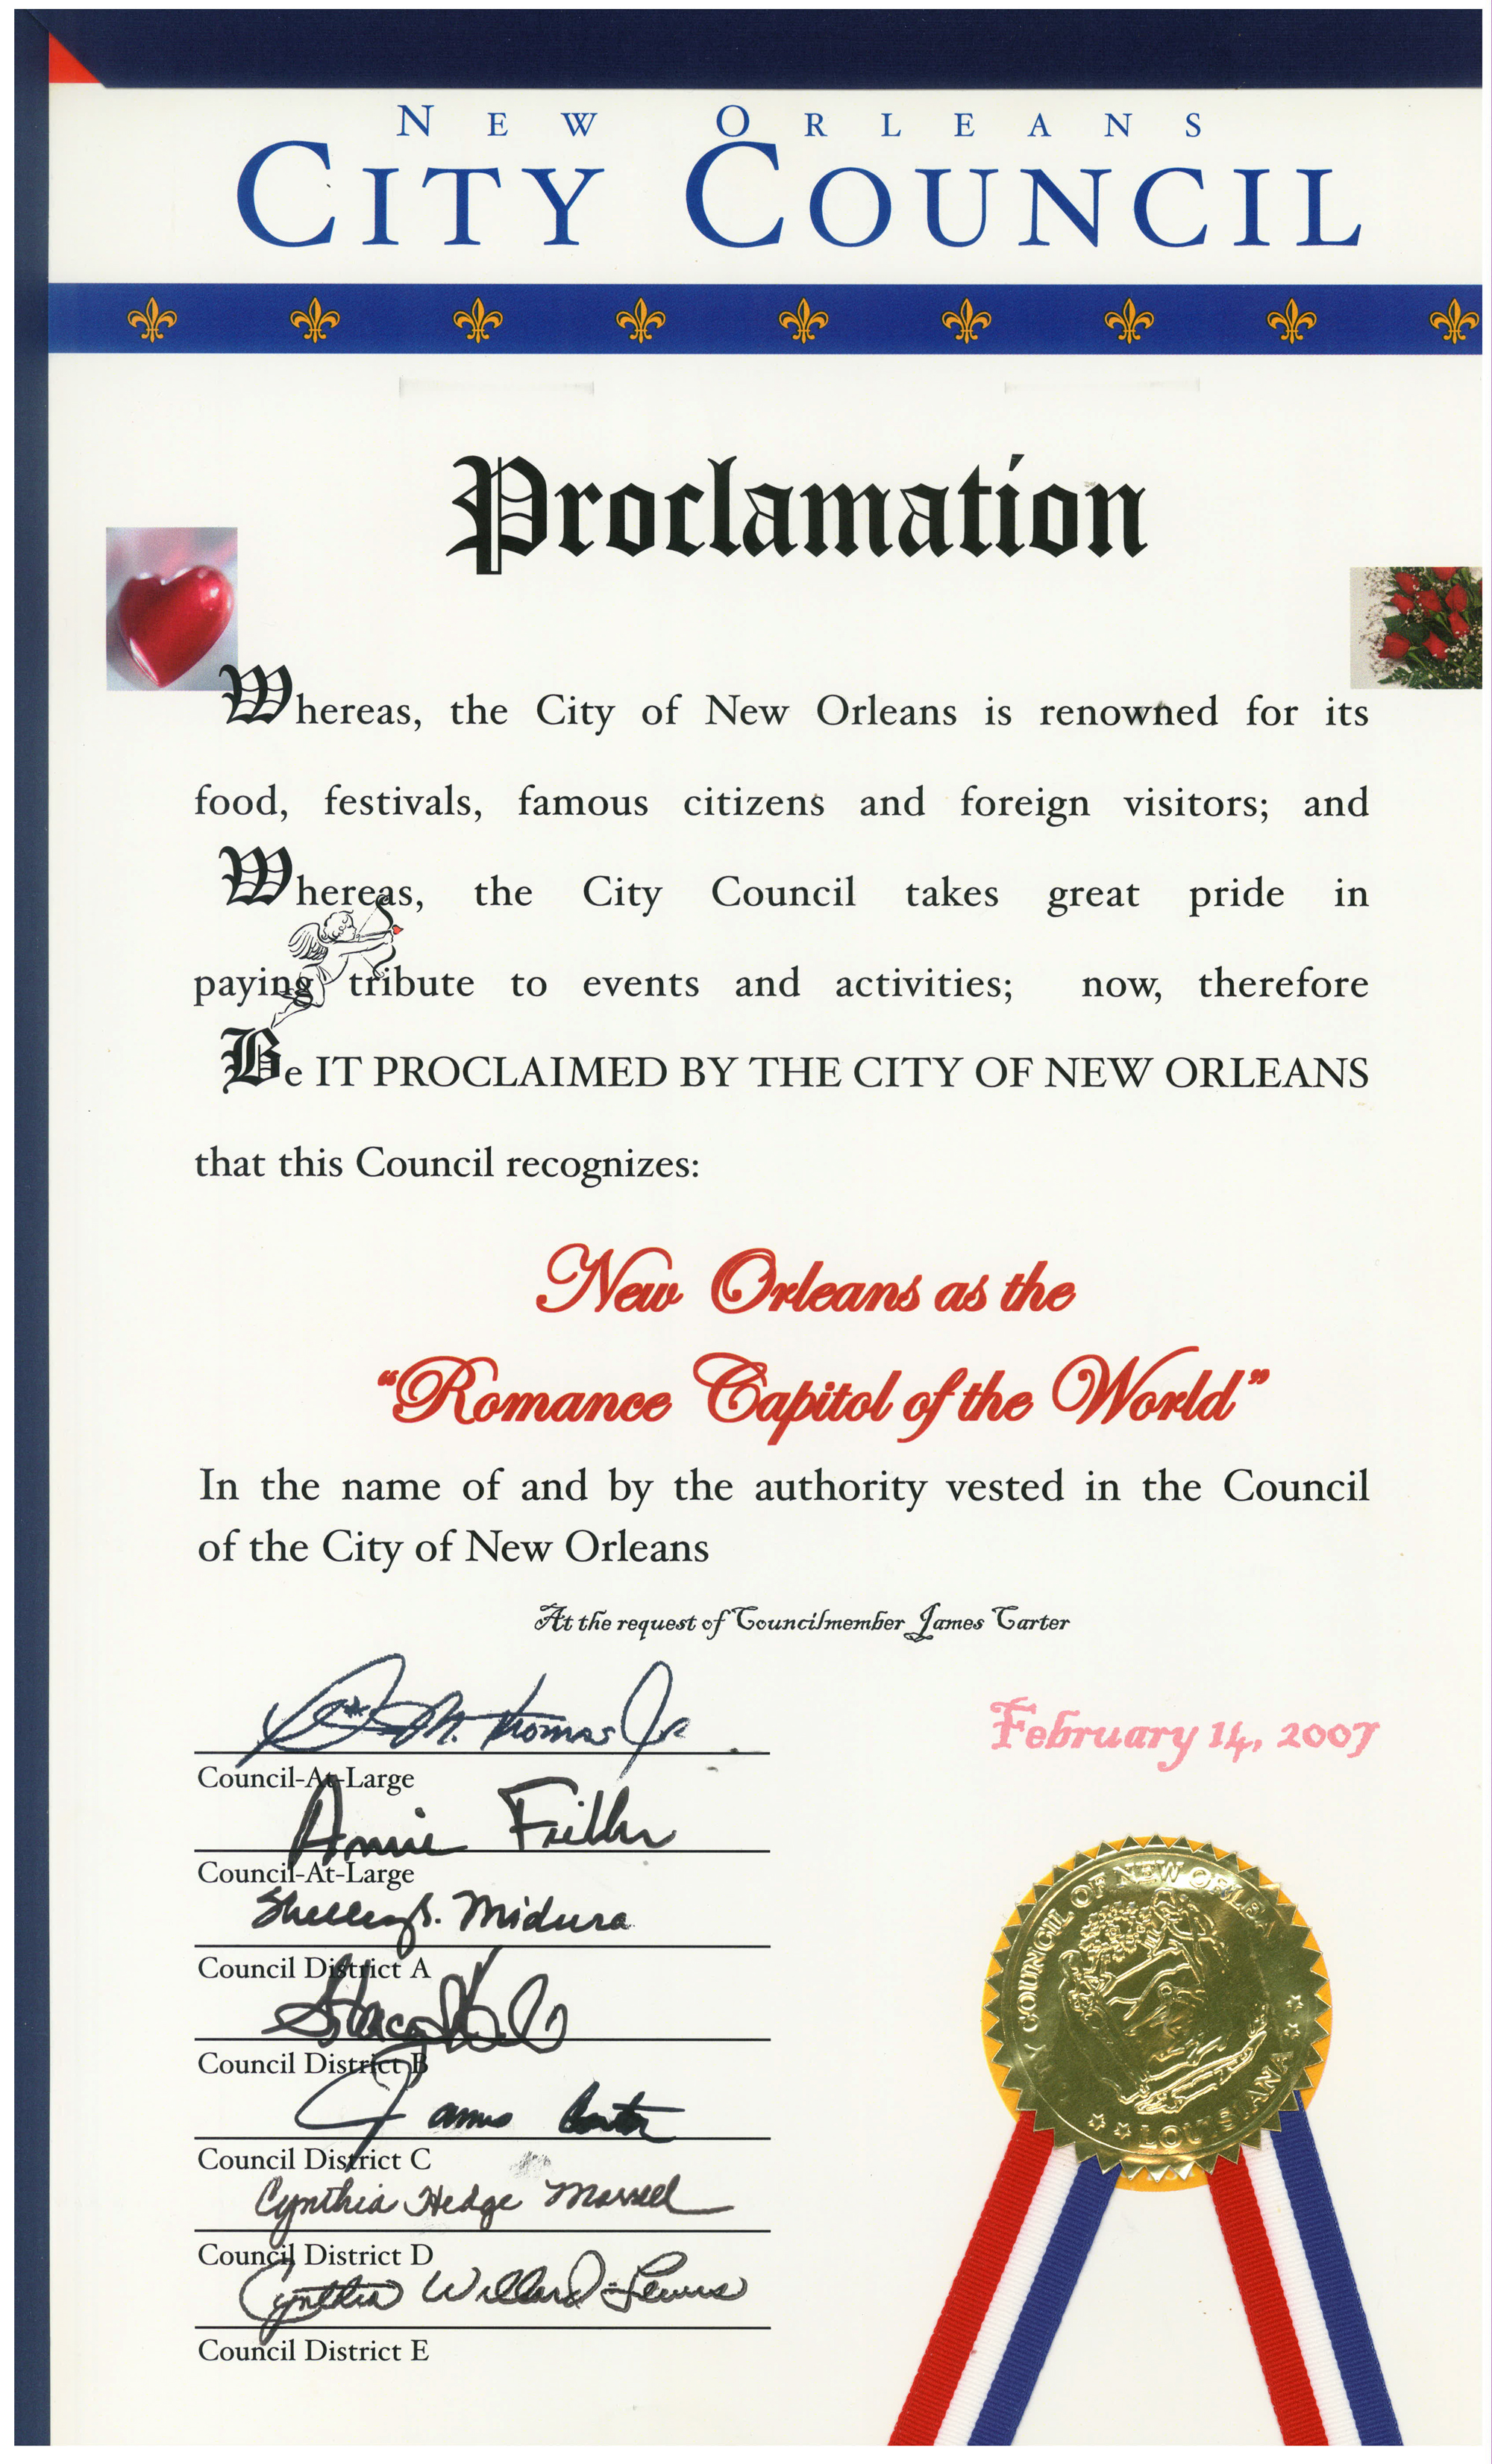 New-Orleans-City-Council-Proclamation